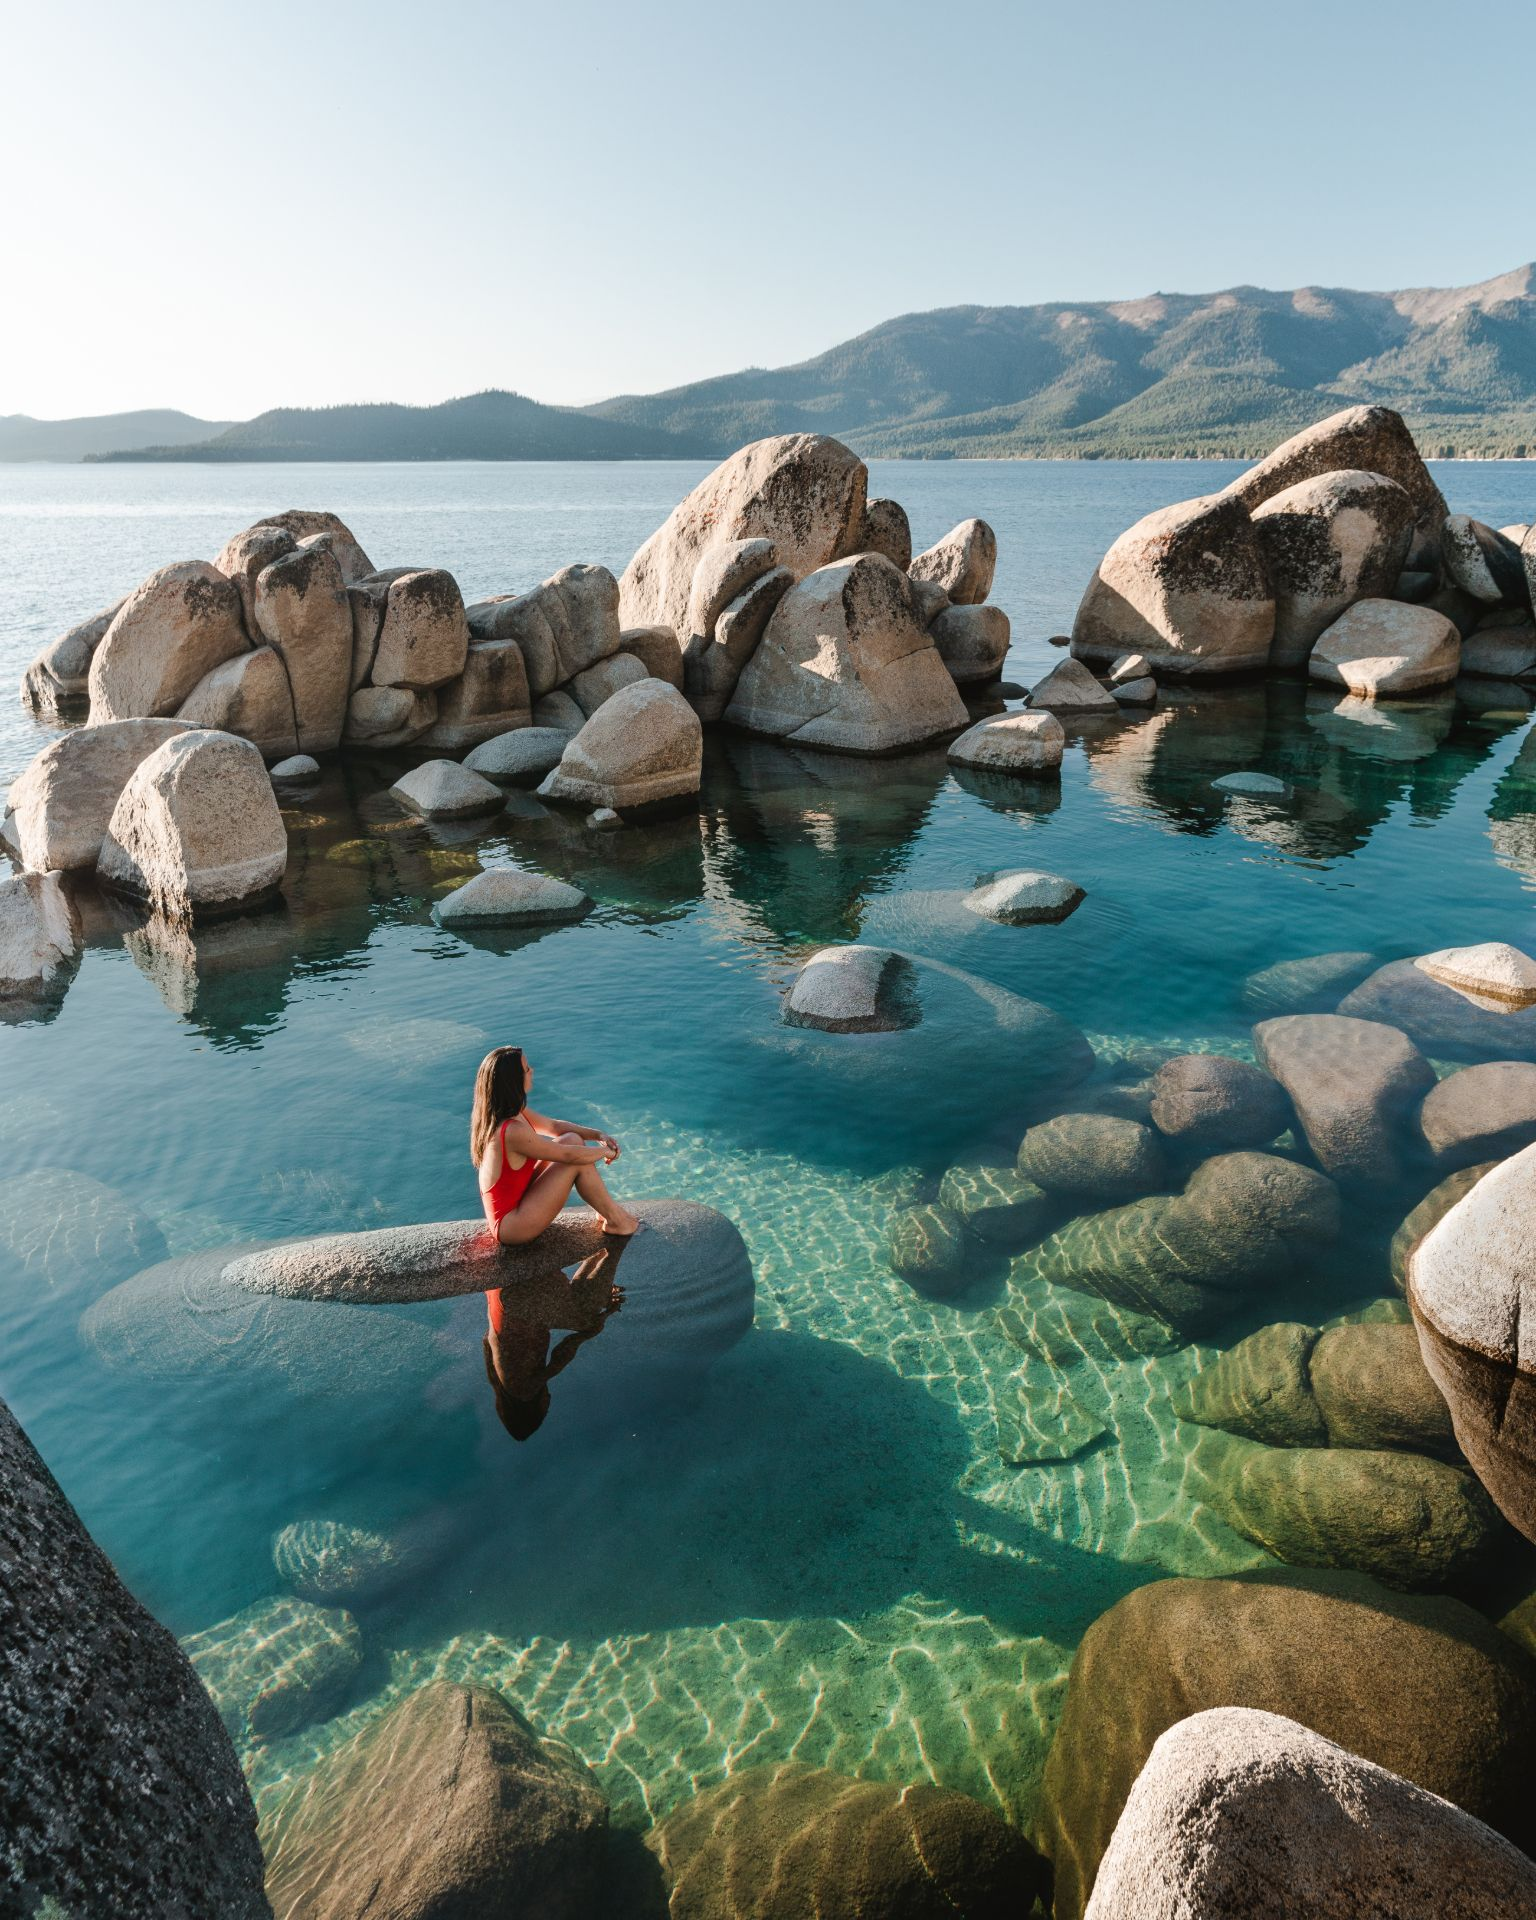 North Lake Tahoe may be the most underrated spot I've ever been to. With crystal clear water, glorious sunny weather and a plethora of activities, it's the perfect paradise! #laketahoe #california #travel